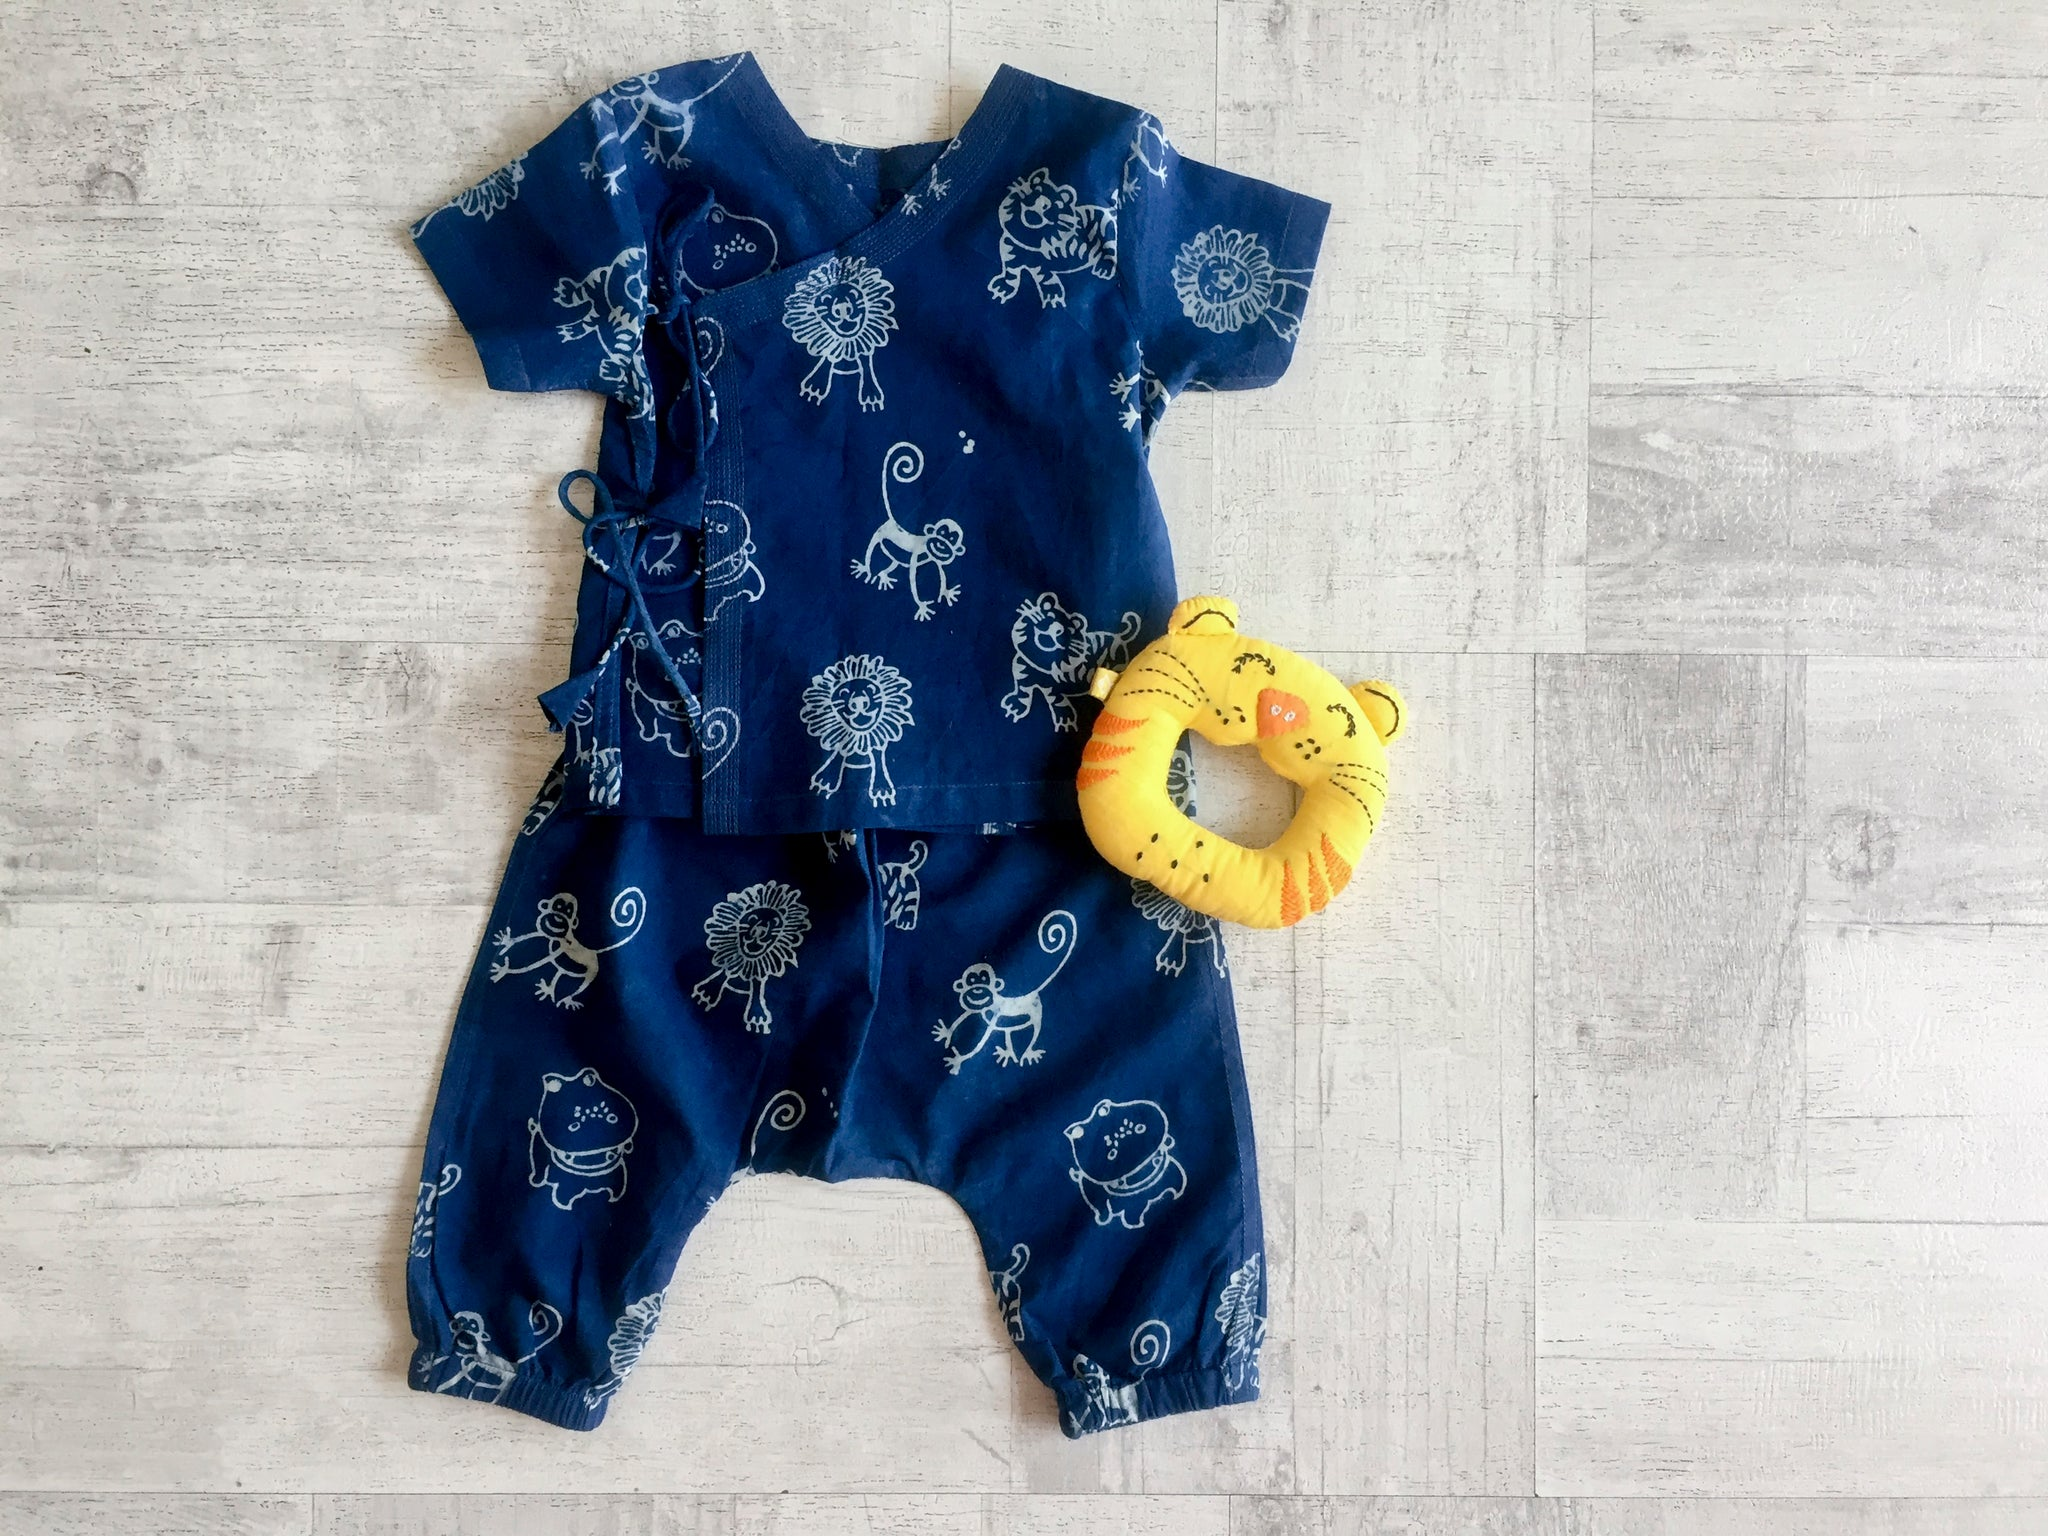 Zoo Bag - Angarakha, Pyjama Pants and Teether Set - Whitewater